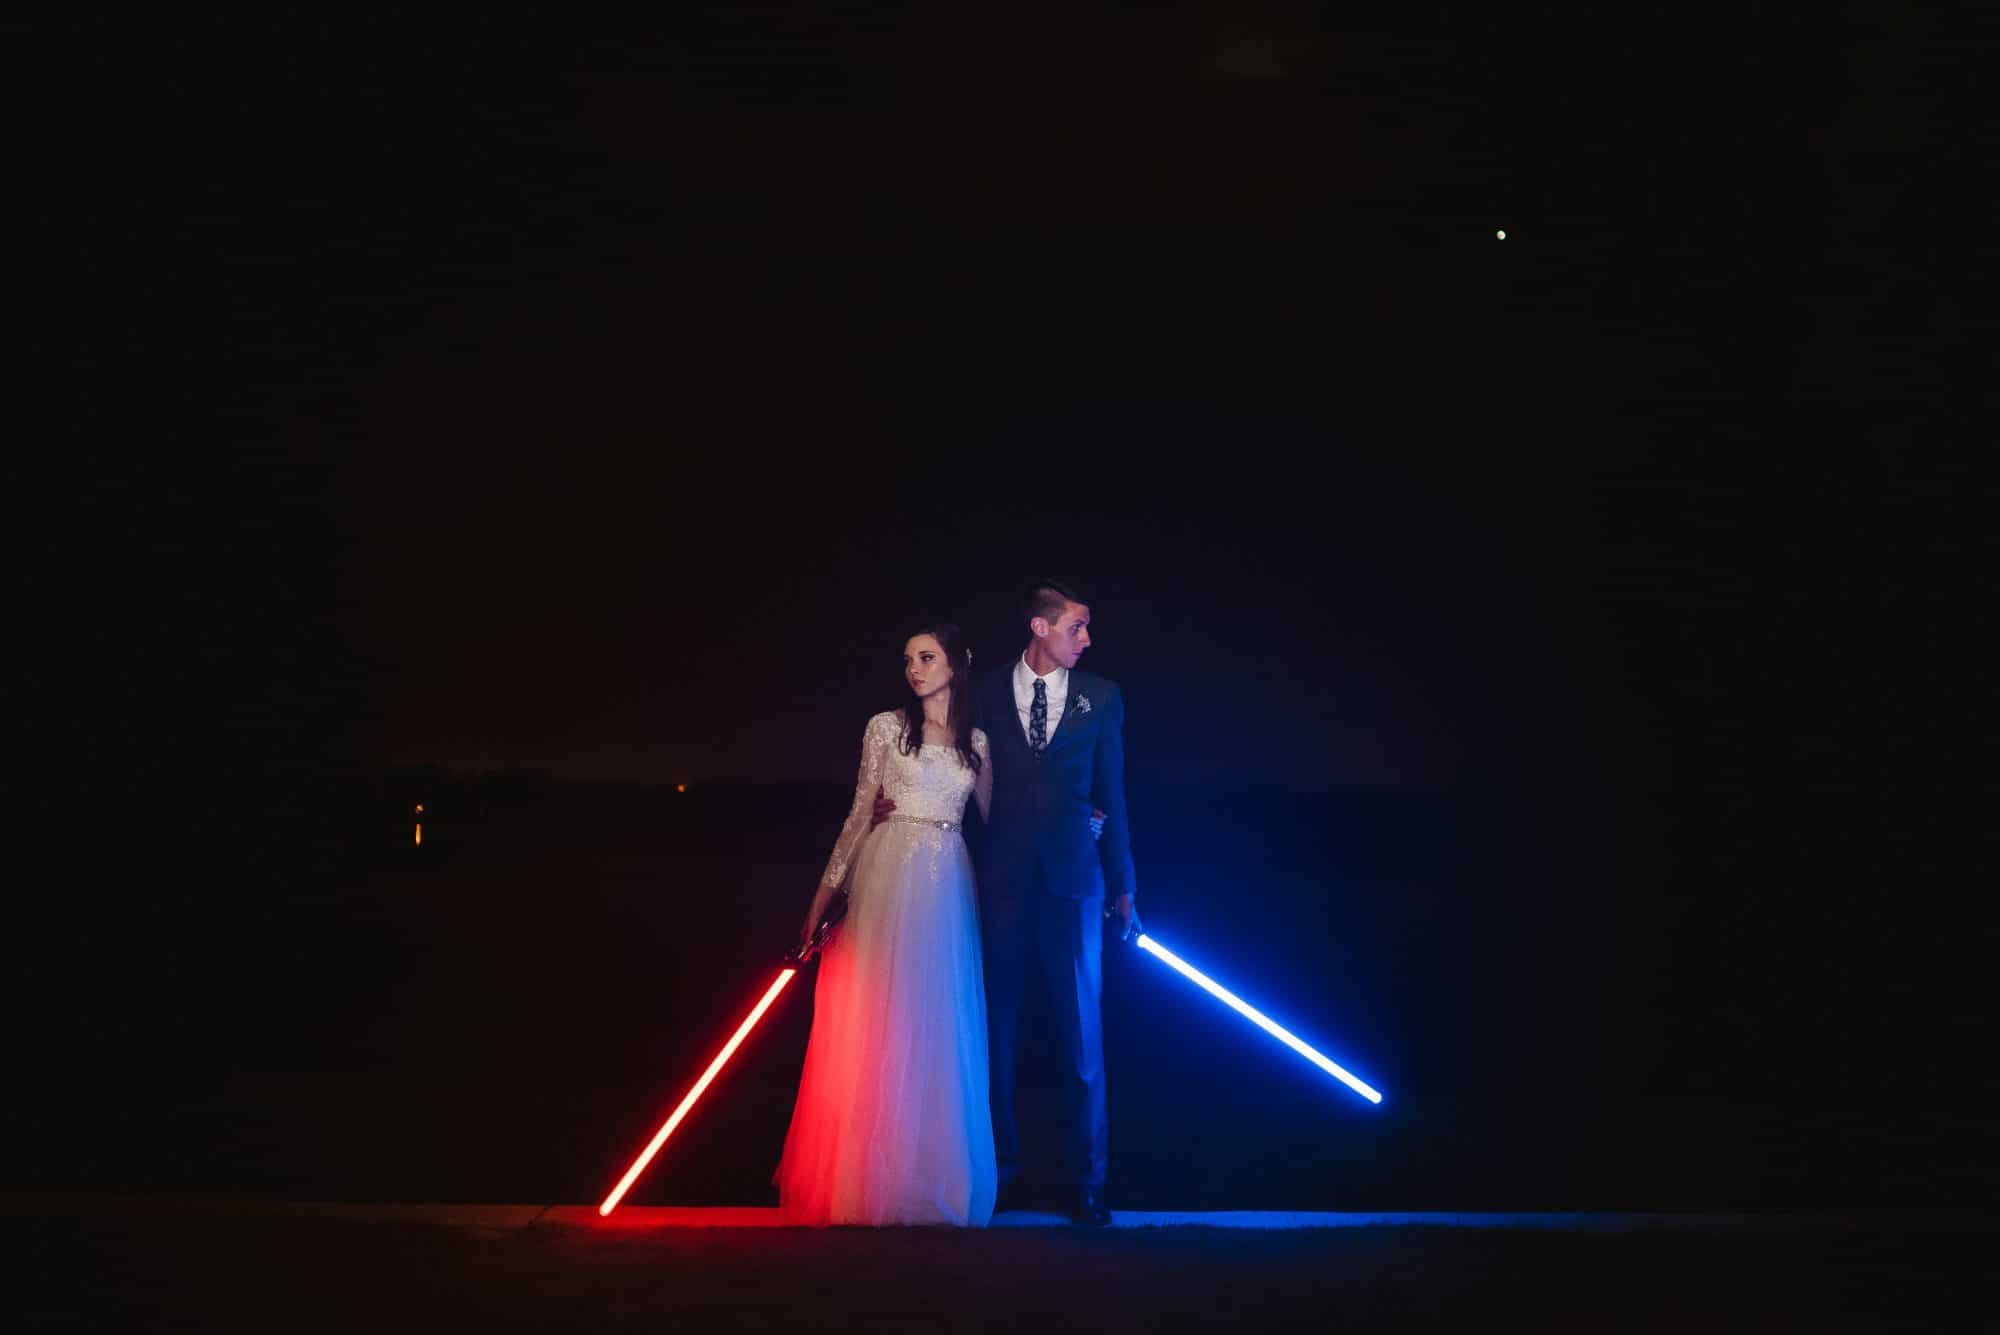 Blue Blazers Entertainment - Bride and groom holding light sabers in pitch black